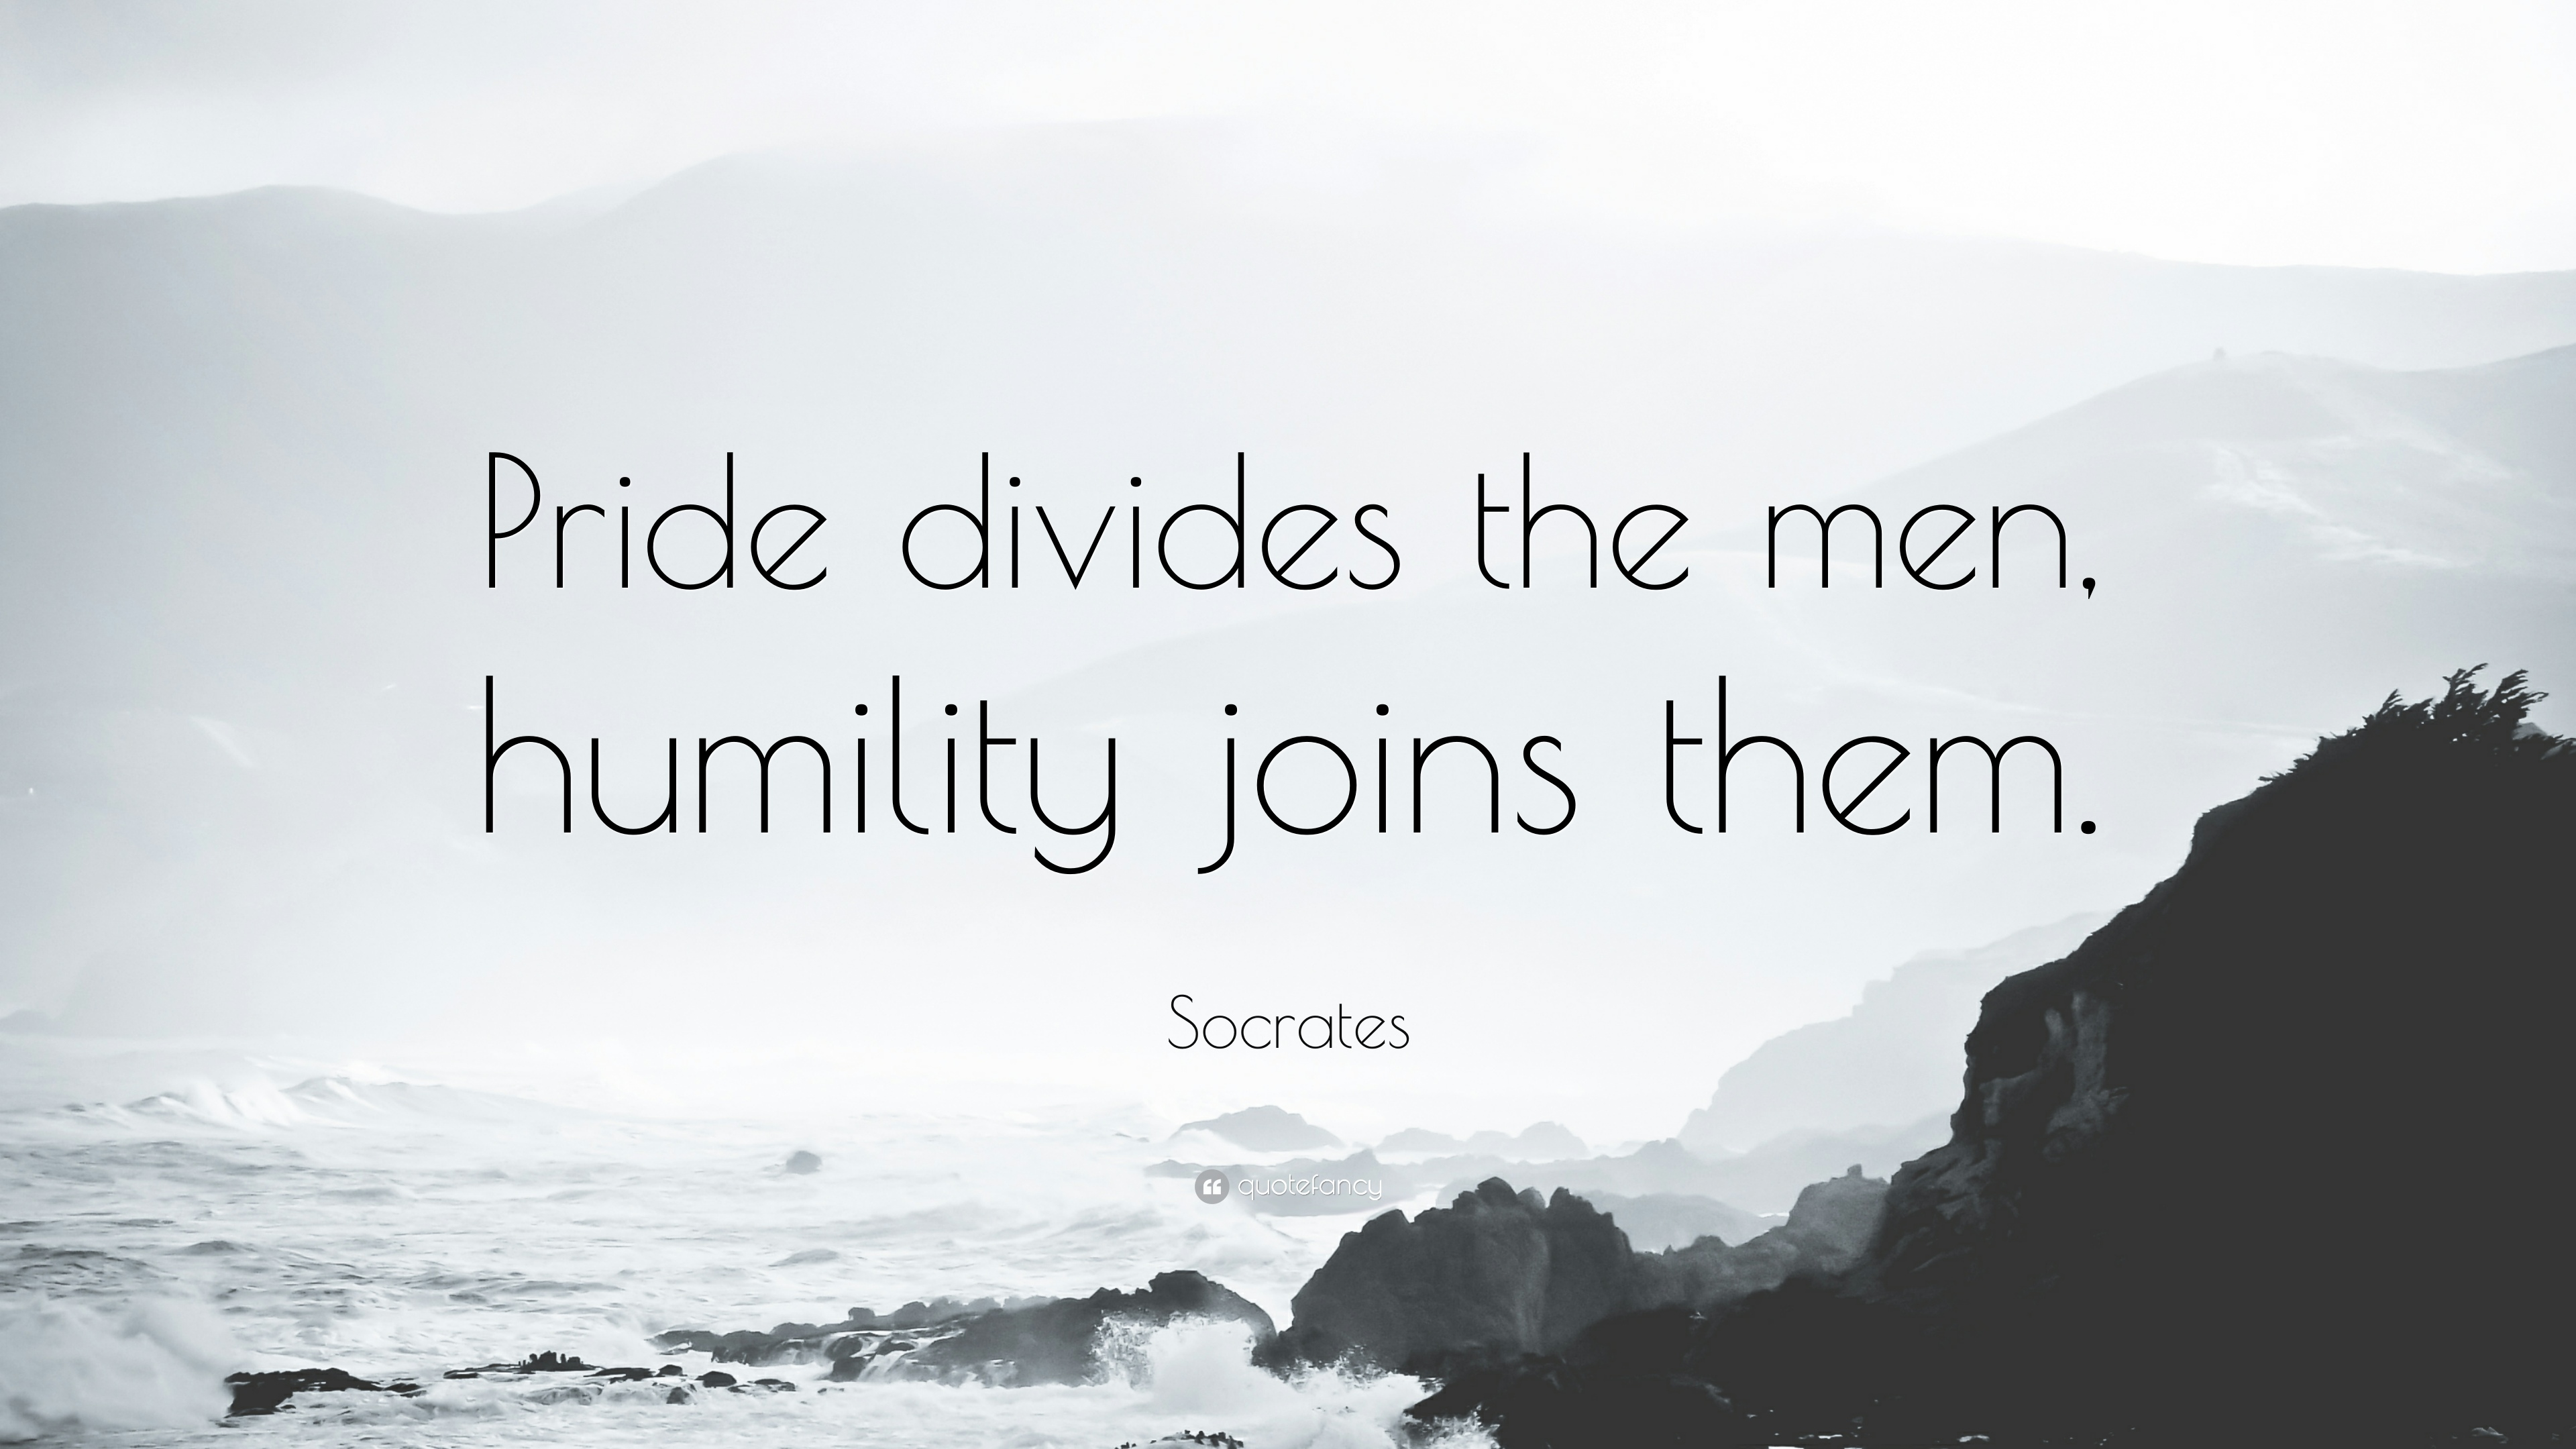 Socrates Quotes On Marriage: Humility Quotes (40 Wallpapers)